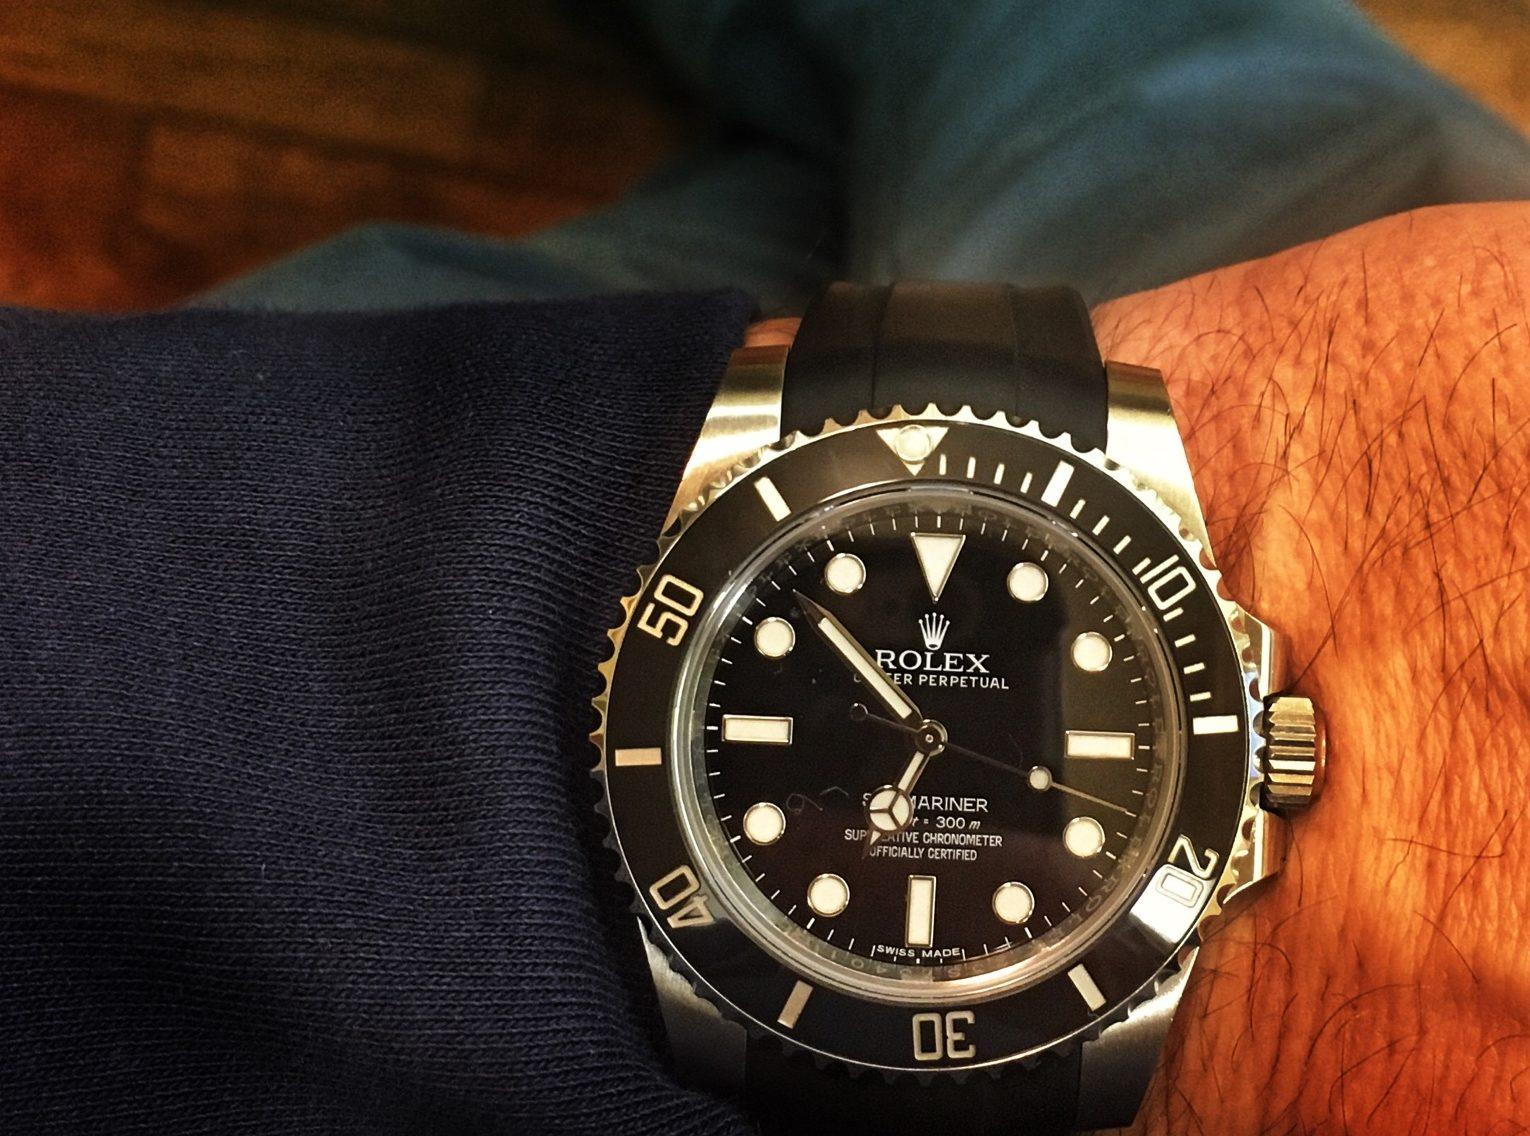 Rolex Rubber Review Of Rubberb Strap On Rolex Submariner Colawatch